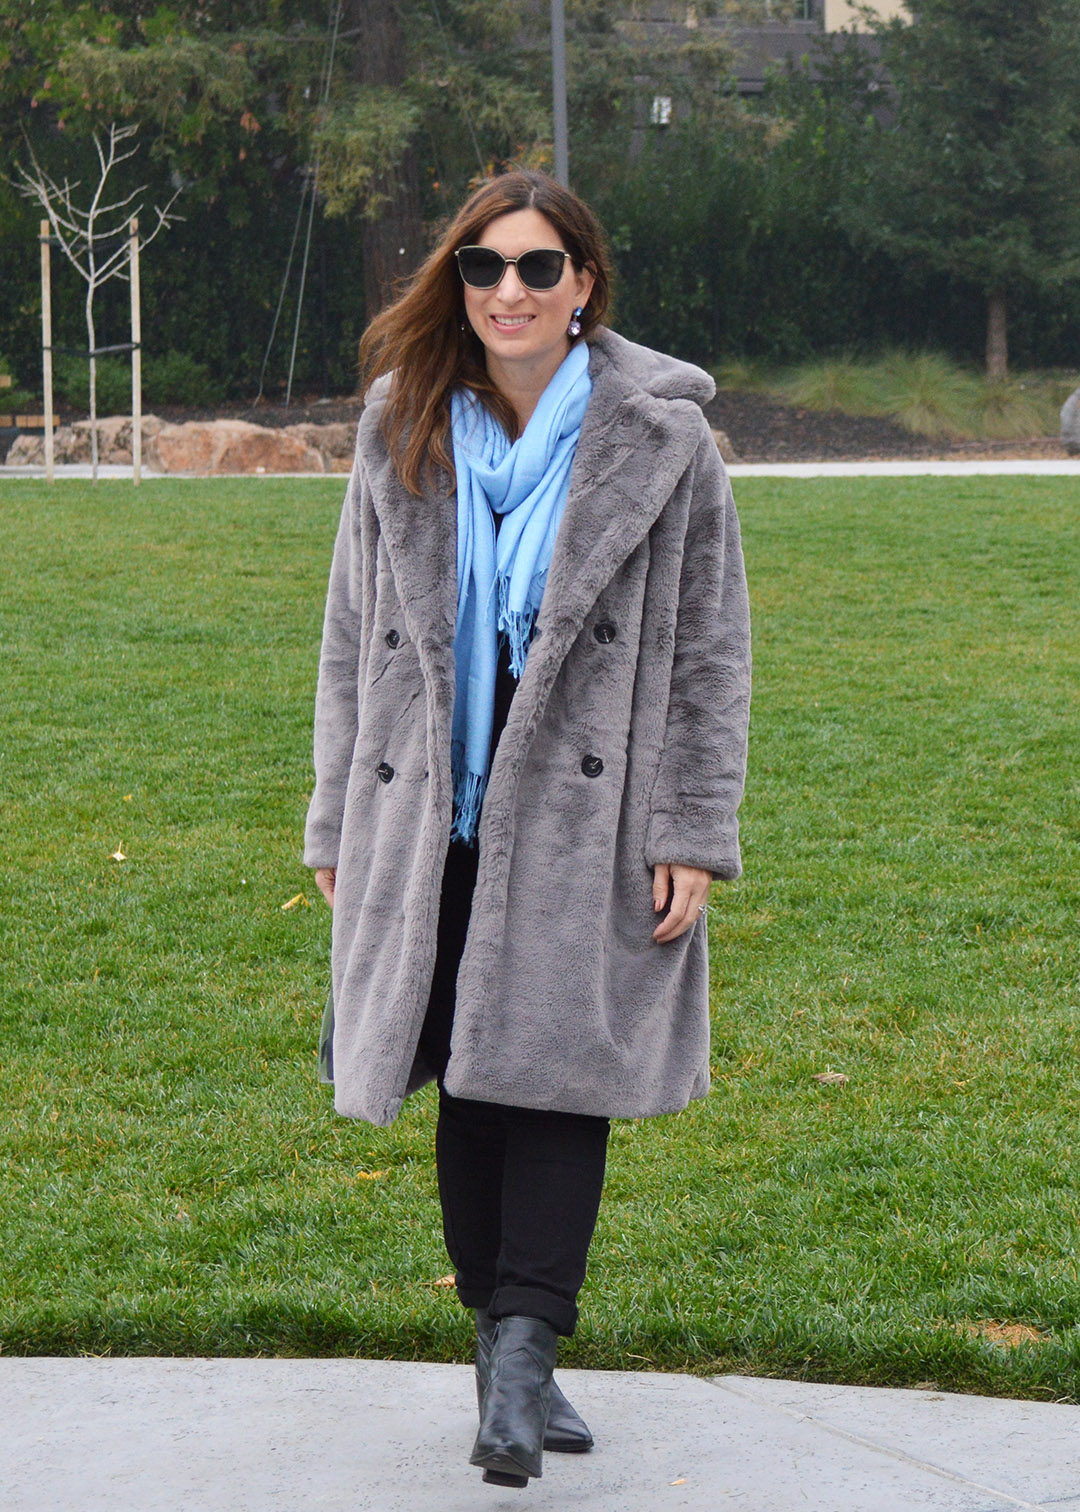 grey teddy coat outfit ideas